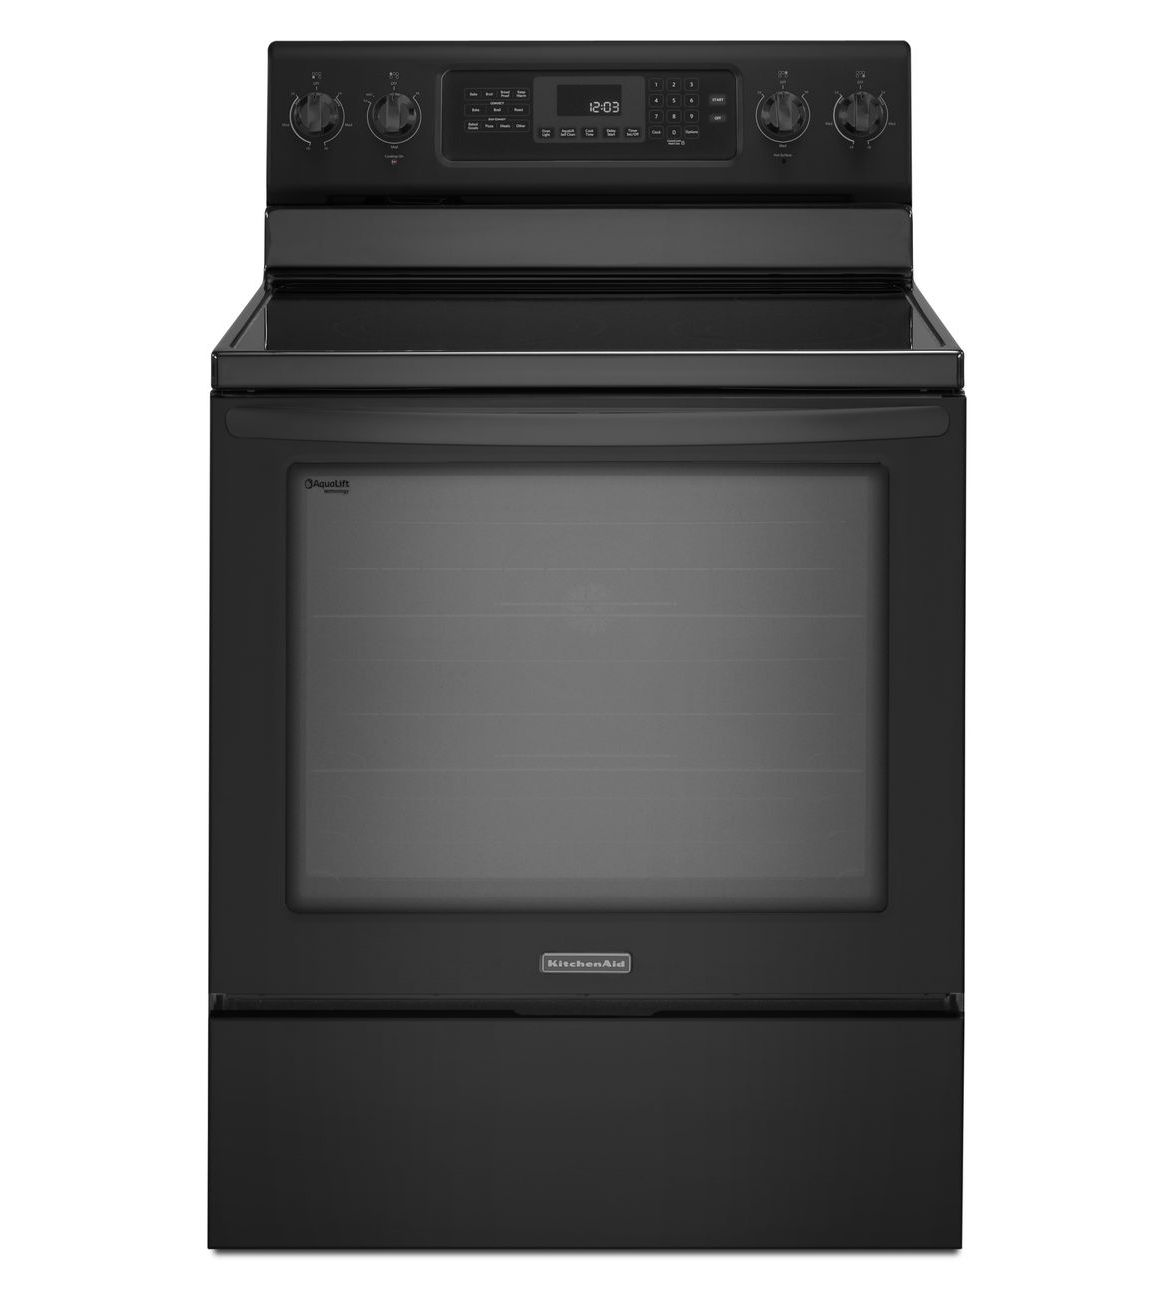 "Kitchenaid KERS202BBL 30"" Freestanding Electric Range With"